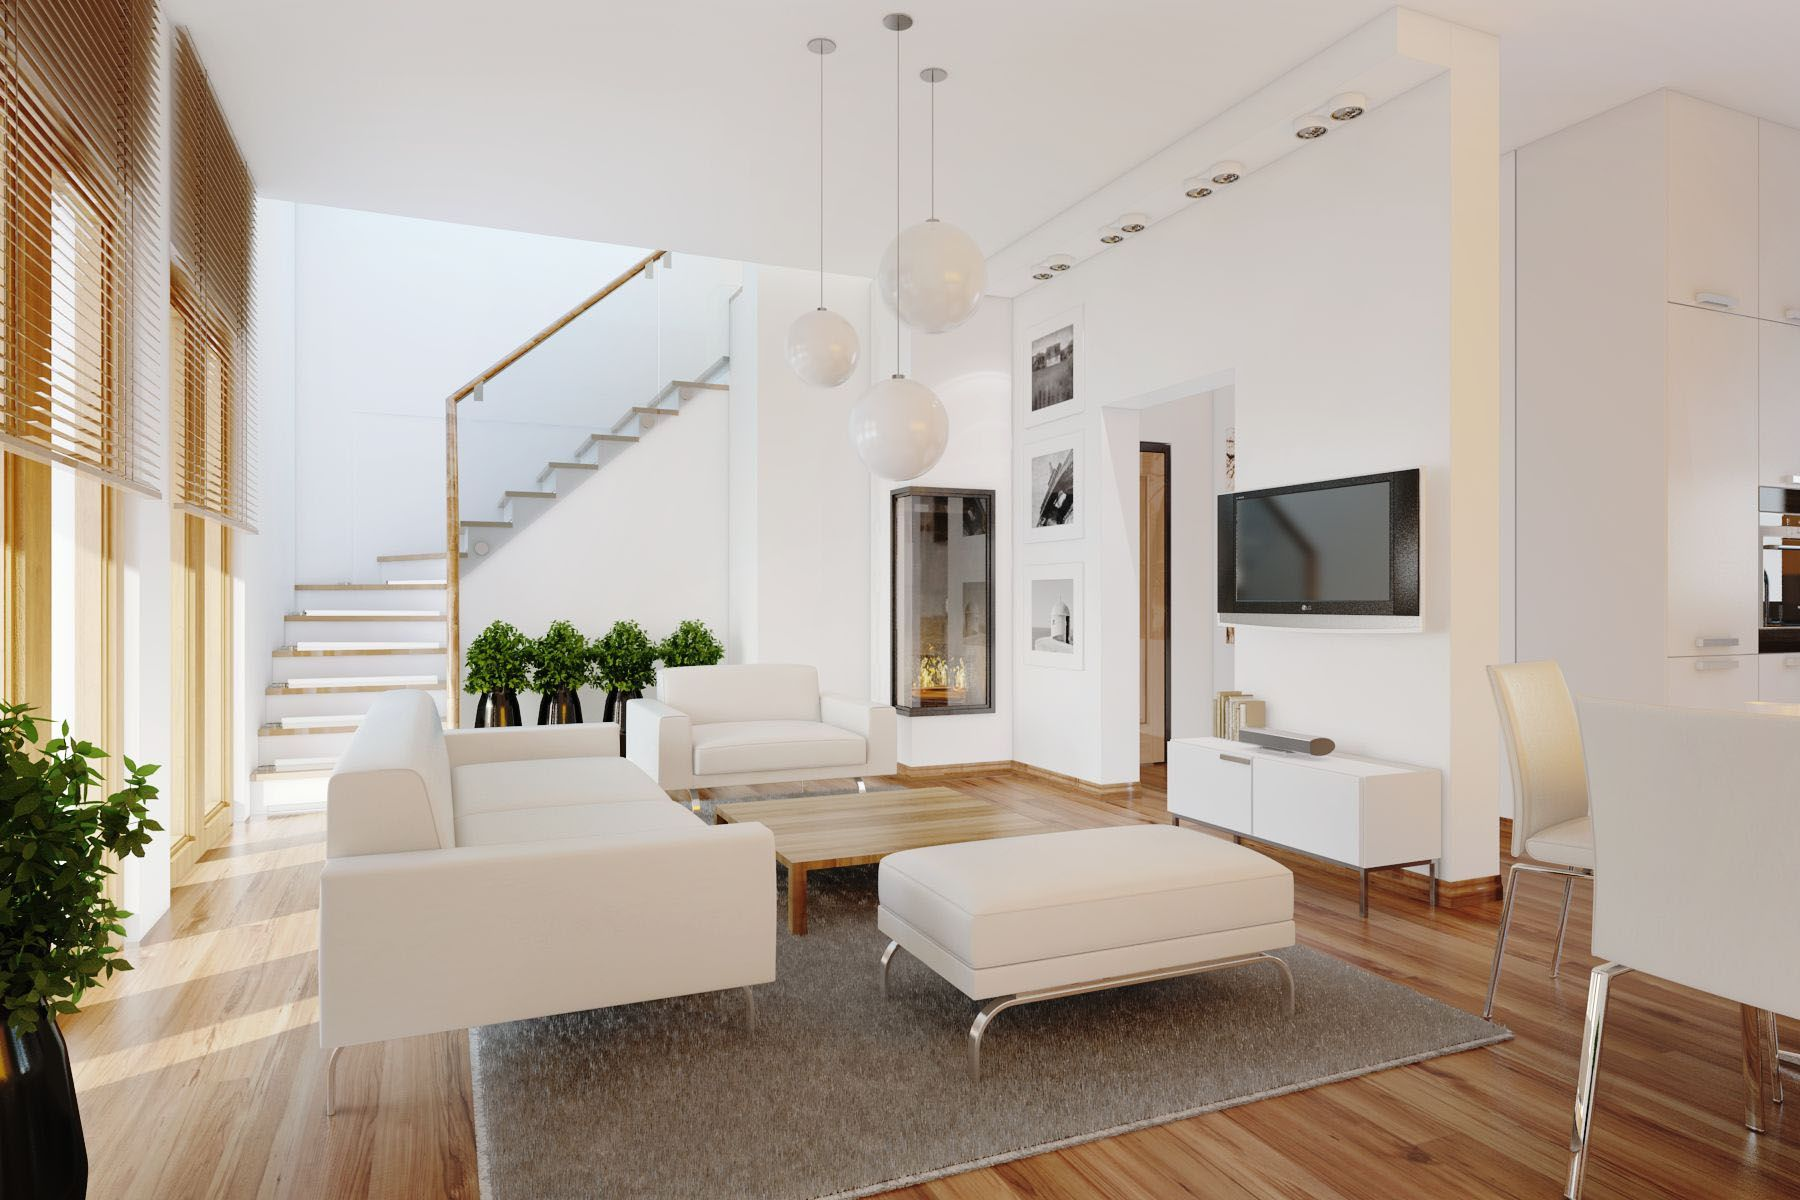 Living Room: Modern White Living Room With Laminated Wooden Floor ...